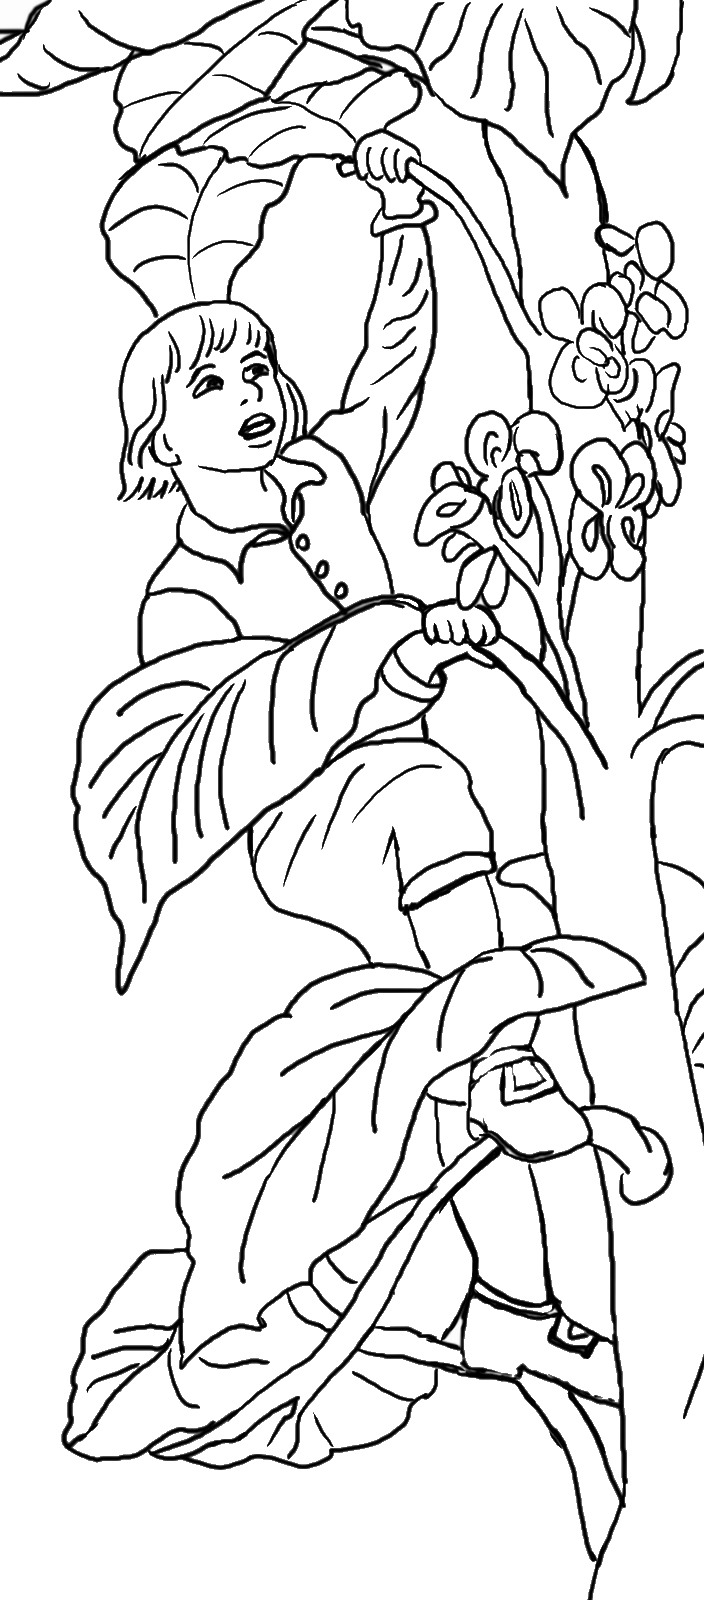 Jack And The Beanstalk Drawing at GetDrawings com | Free for